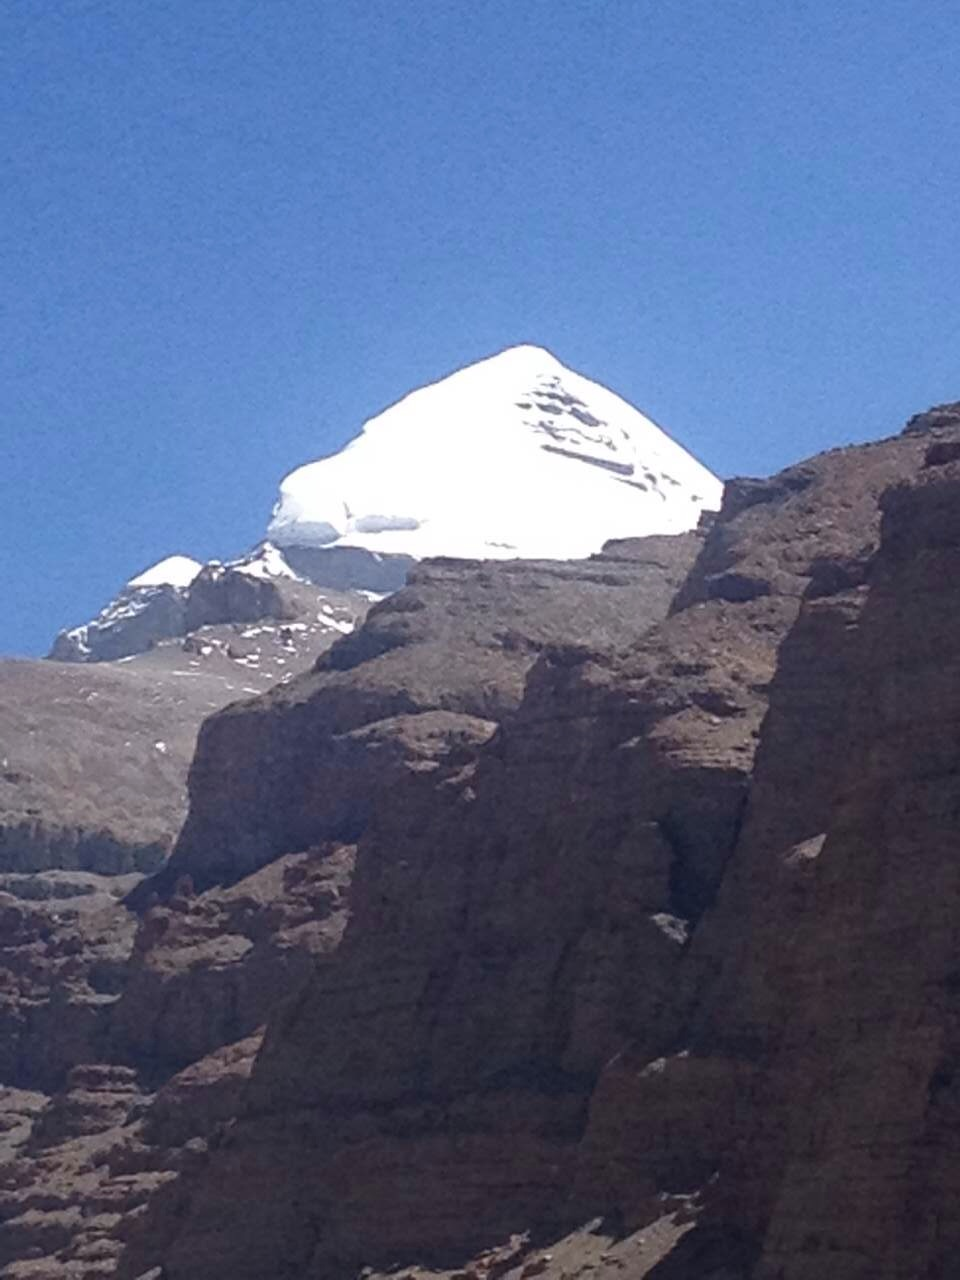 This is a picture taken by our customer at the foot of Mt. Kailash.